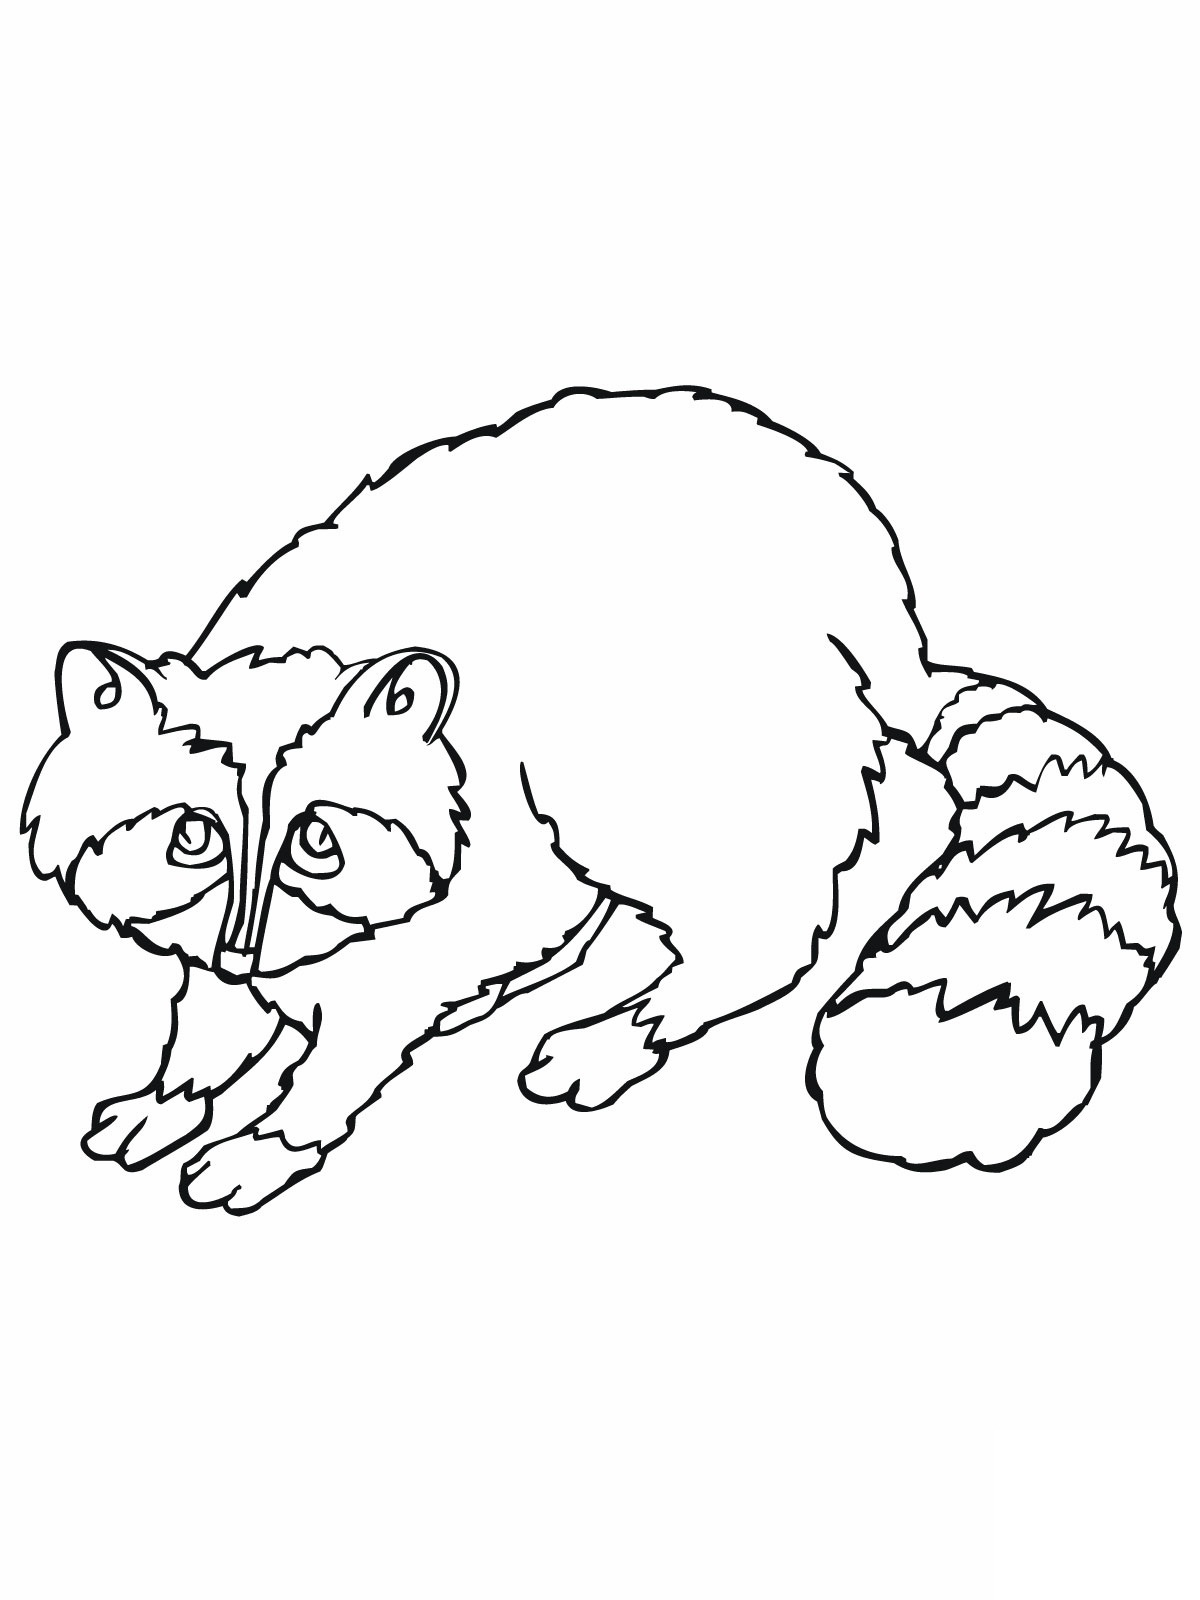 Free Printable Raccoon Coloring Pages For Kids Print Coloring Pages For